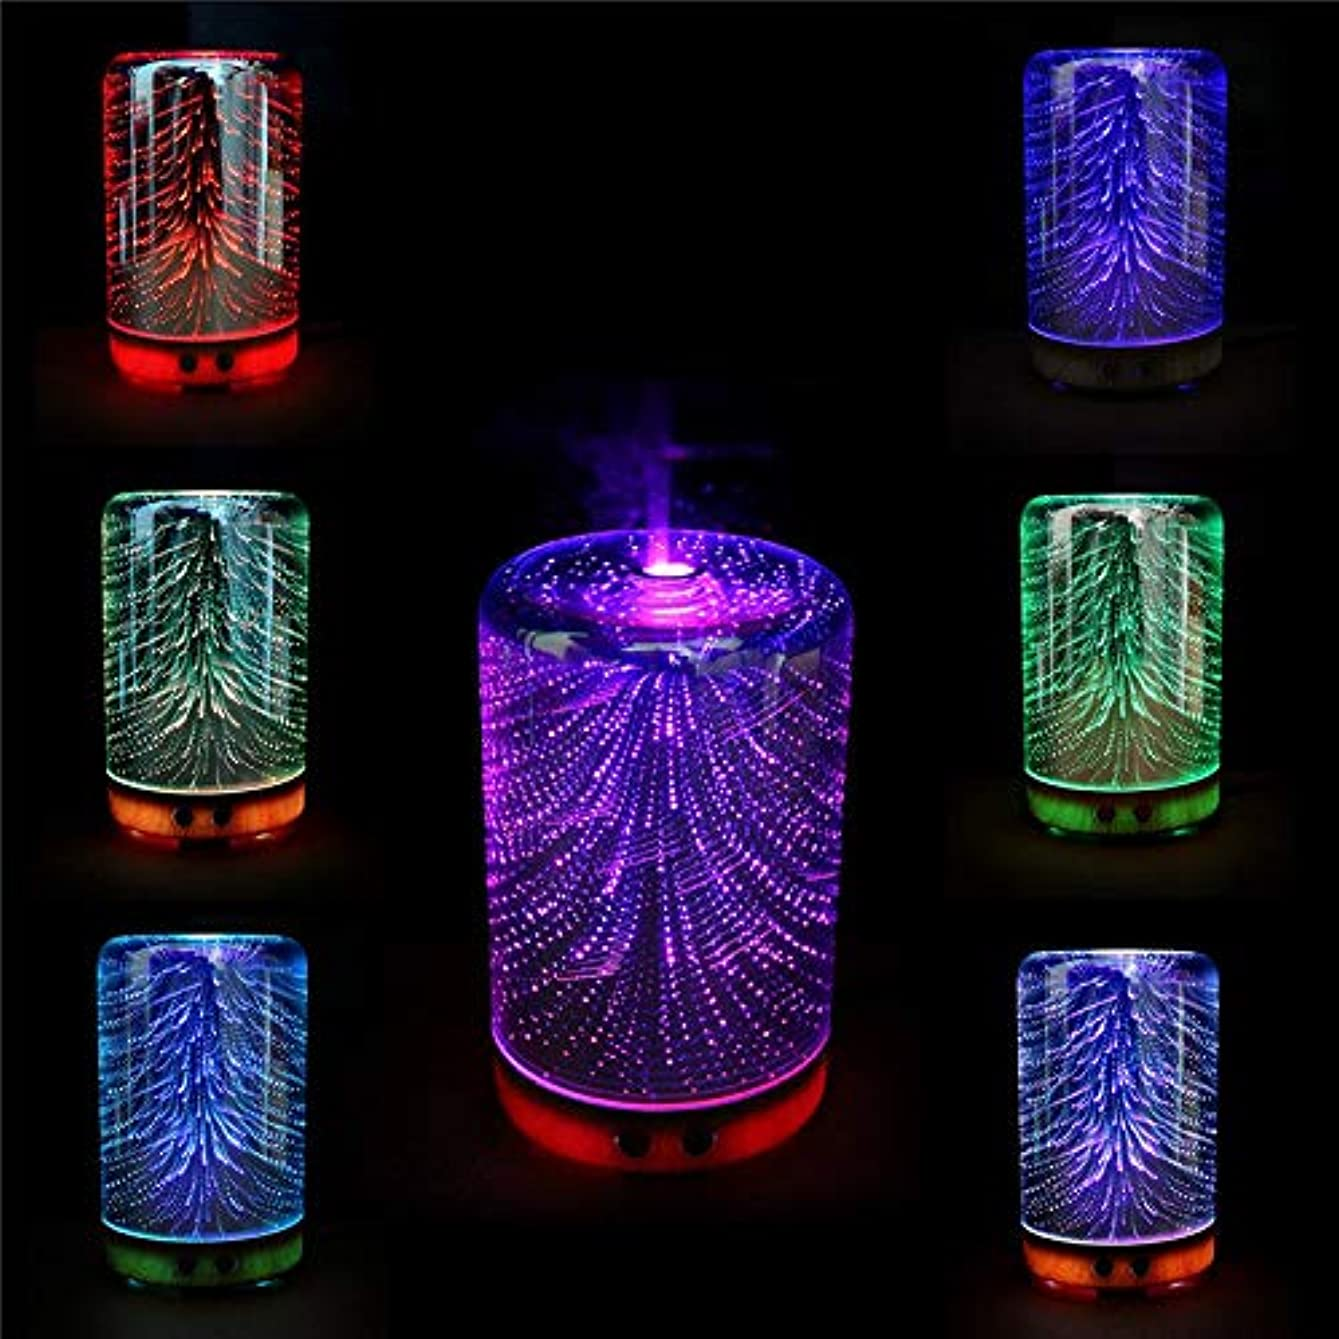 パラダイスインチ一口Fishagelo Color Changing 3D Lighting Essential Oil Aroma Diffuser Ultrasonic Mist Humidifier Aromatherapy 141[...